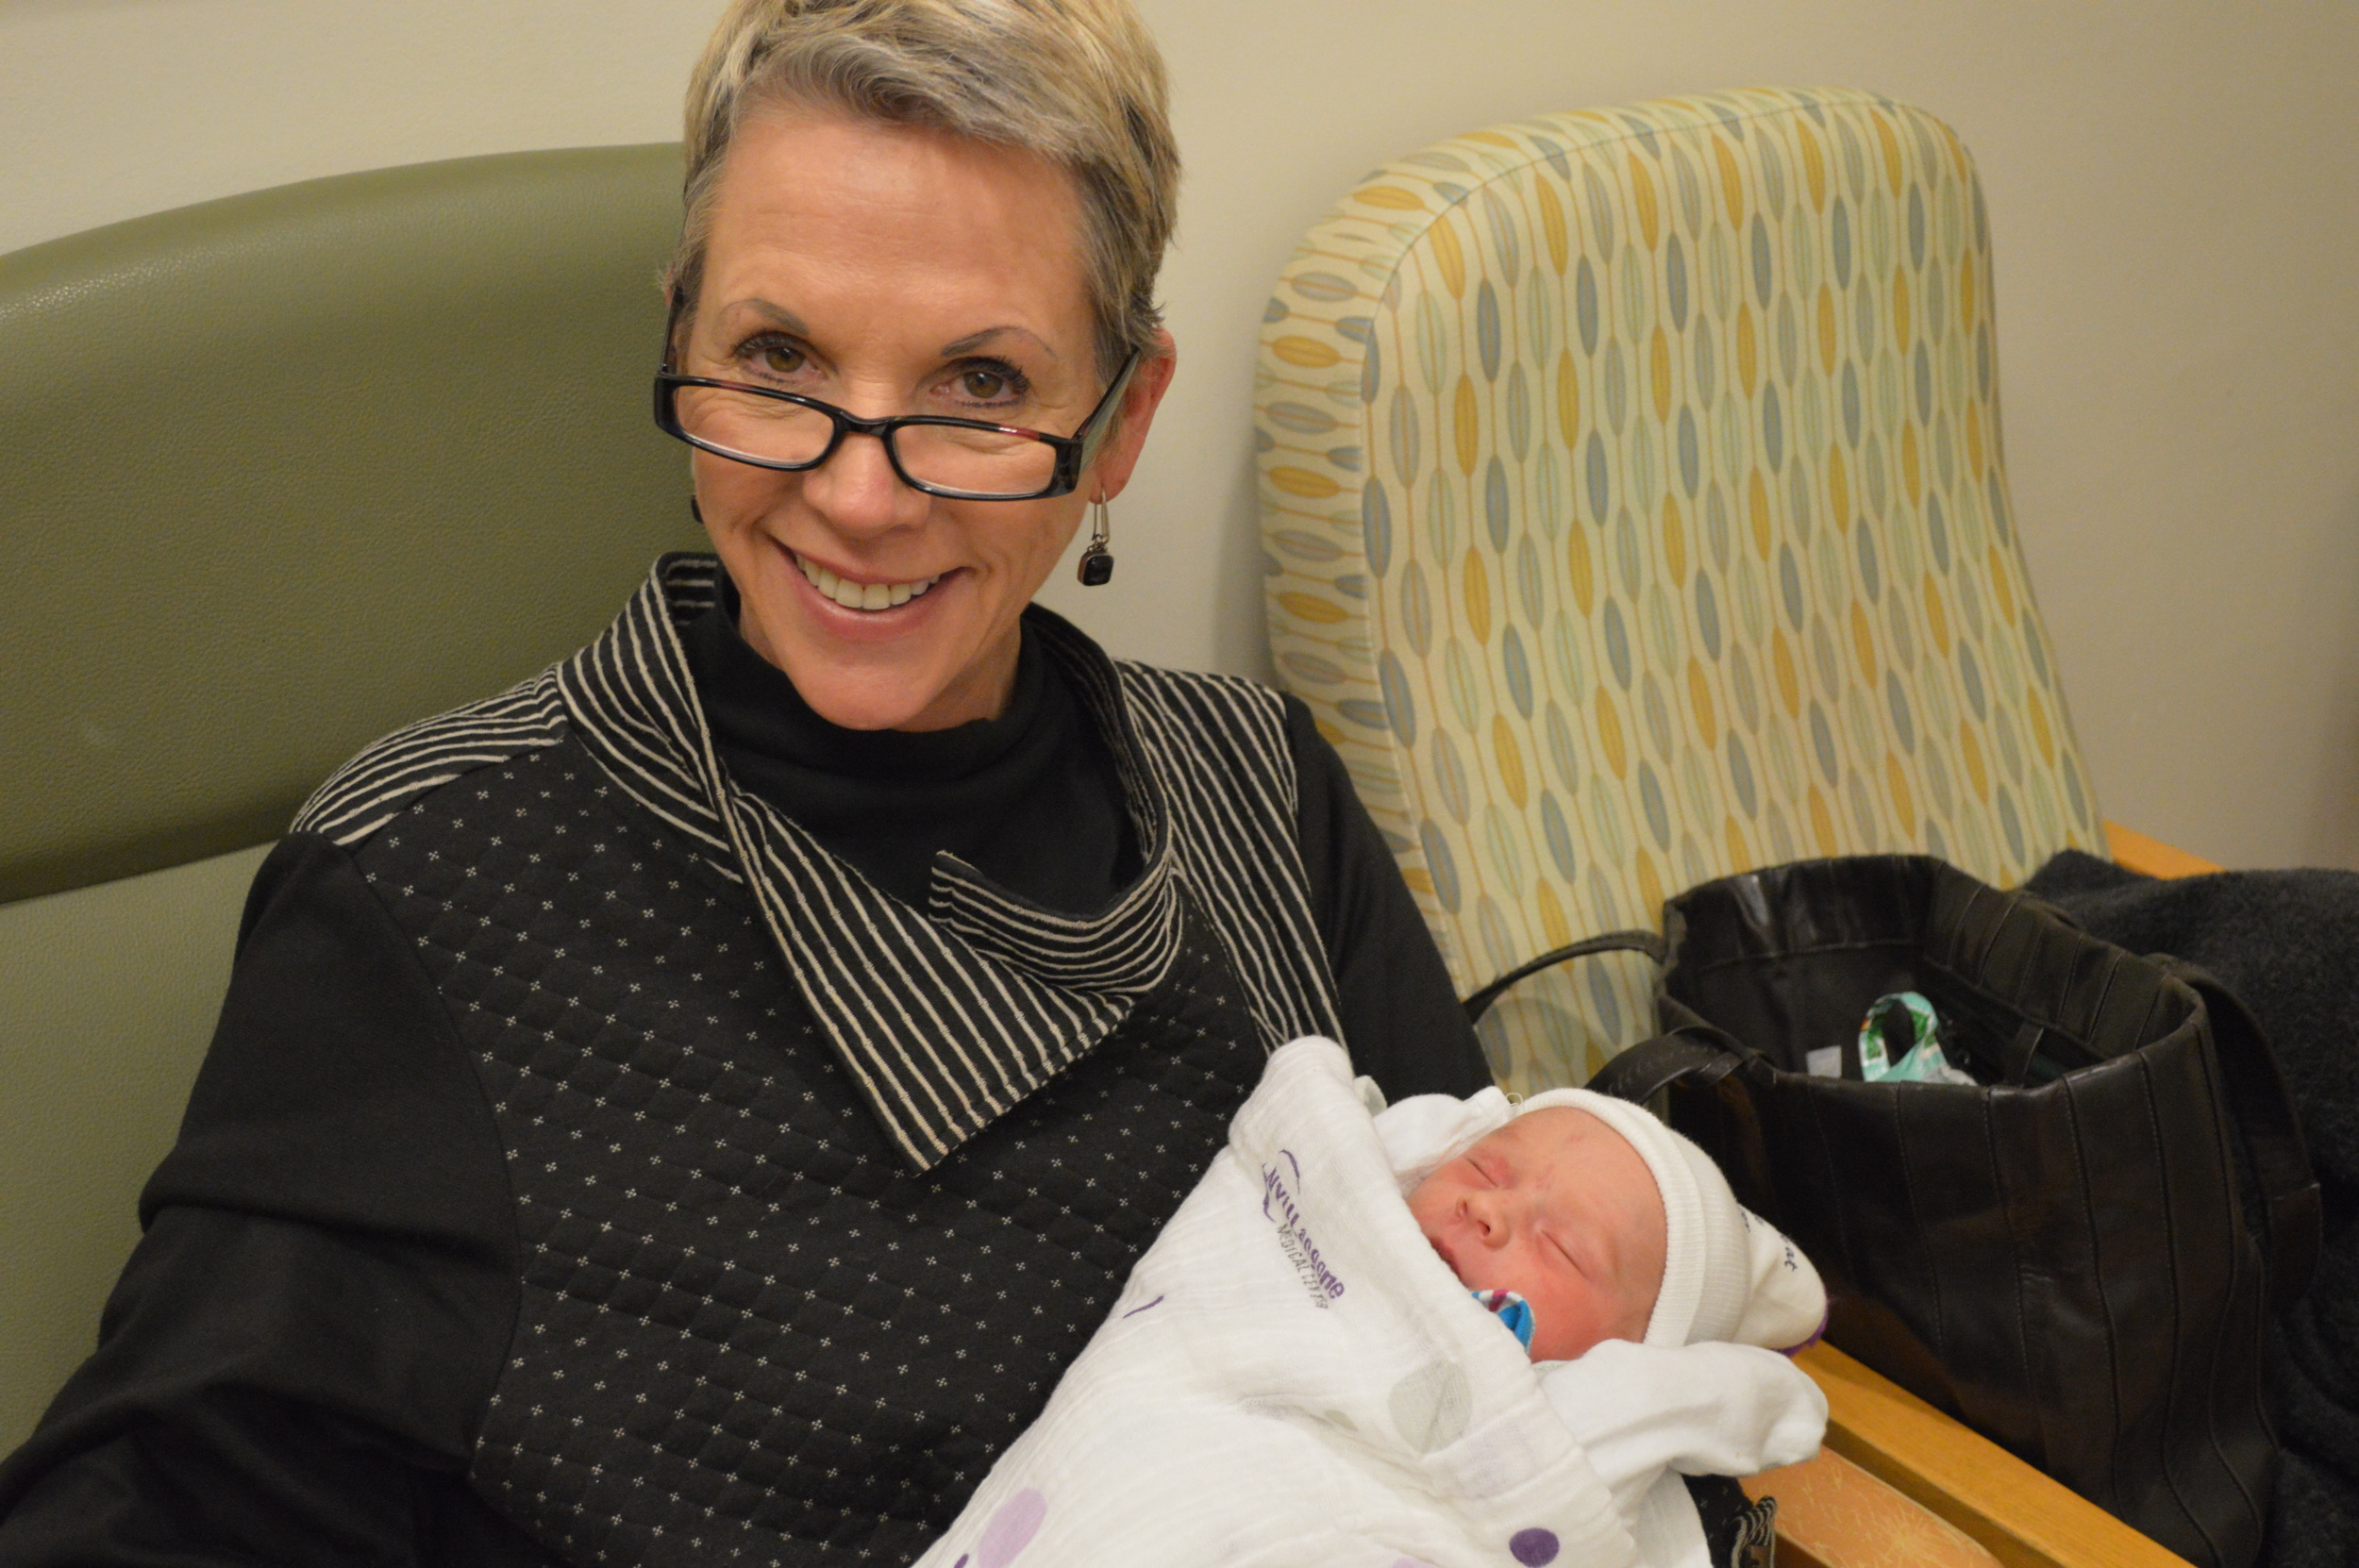 Meet my new grandson, Dylan!